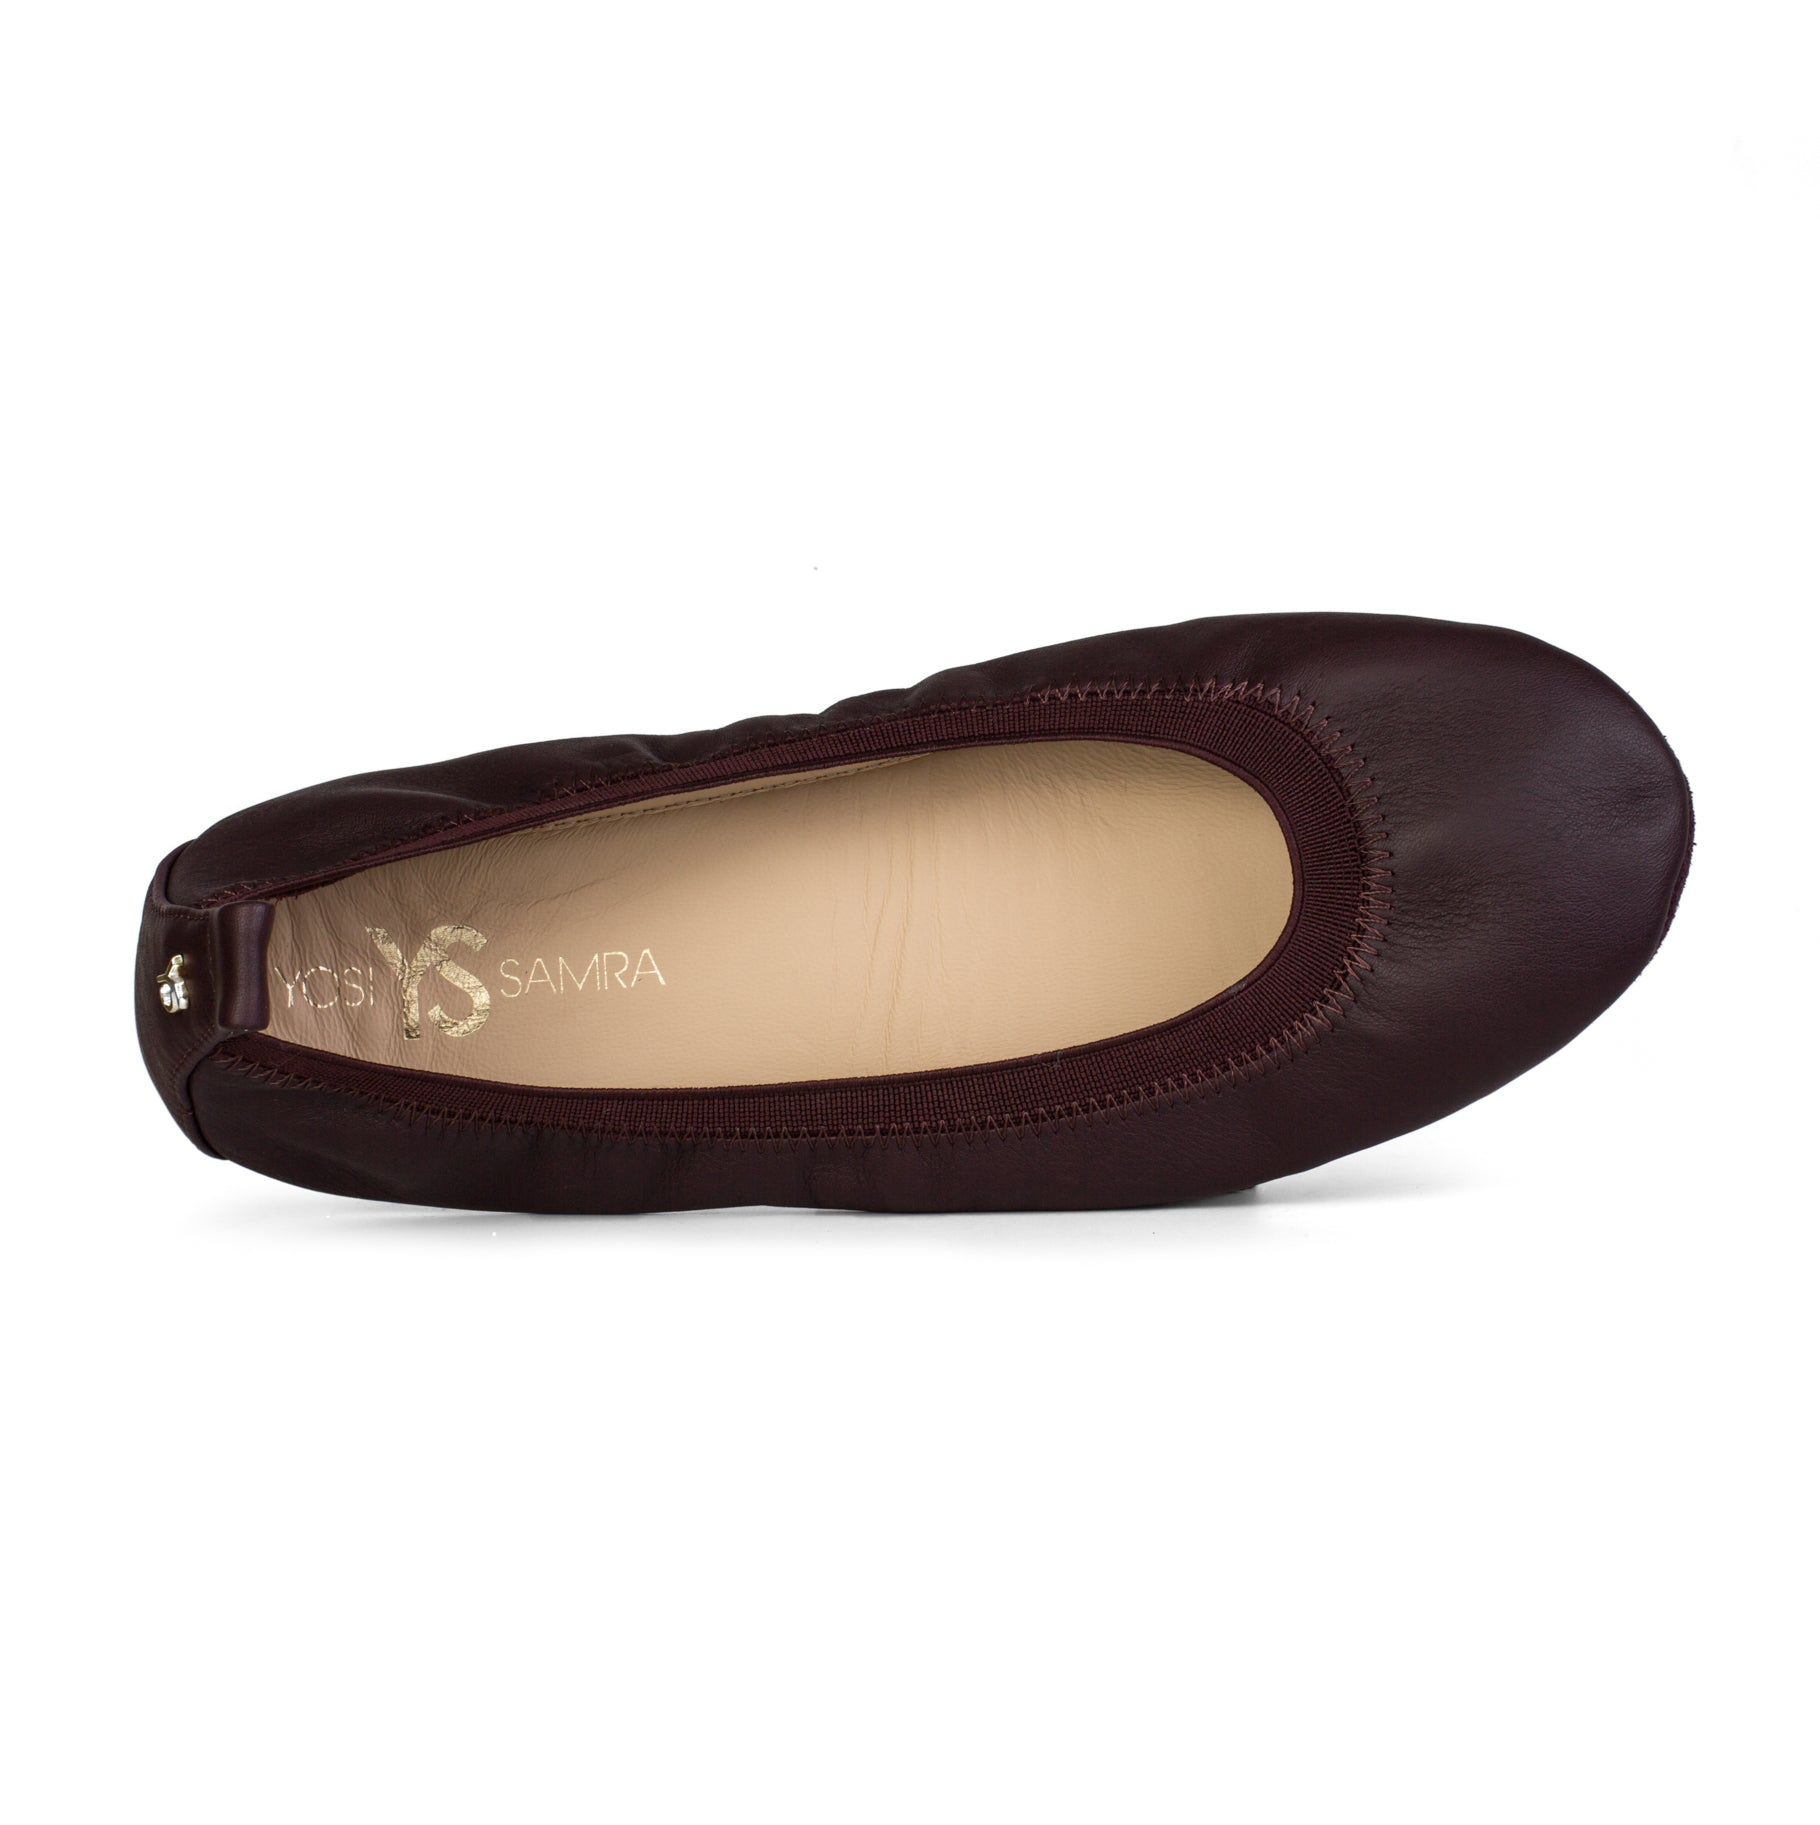 yosi samra fig purple leather ballet flat